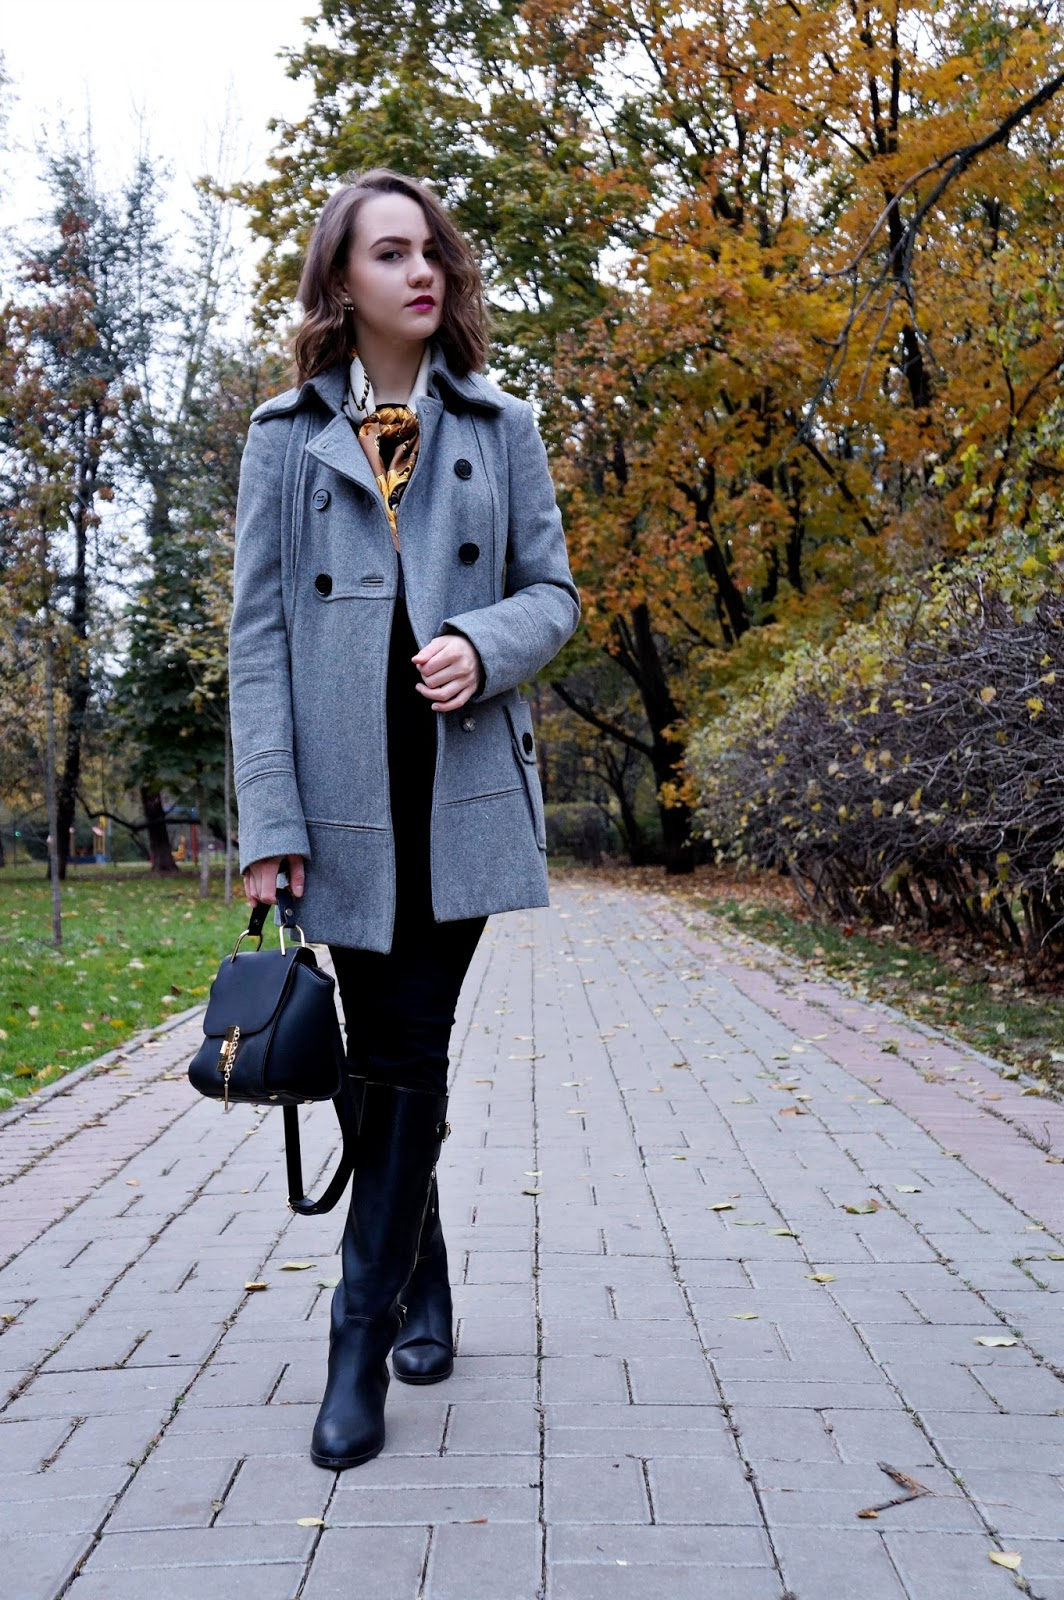 Grey coat | Fashion blogger | Alina Ermilova | Winter look | Black boots